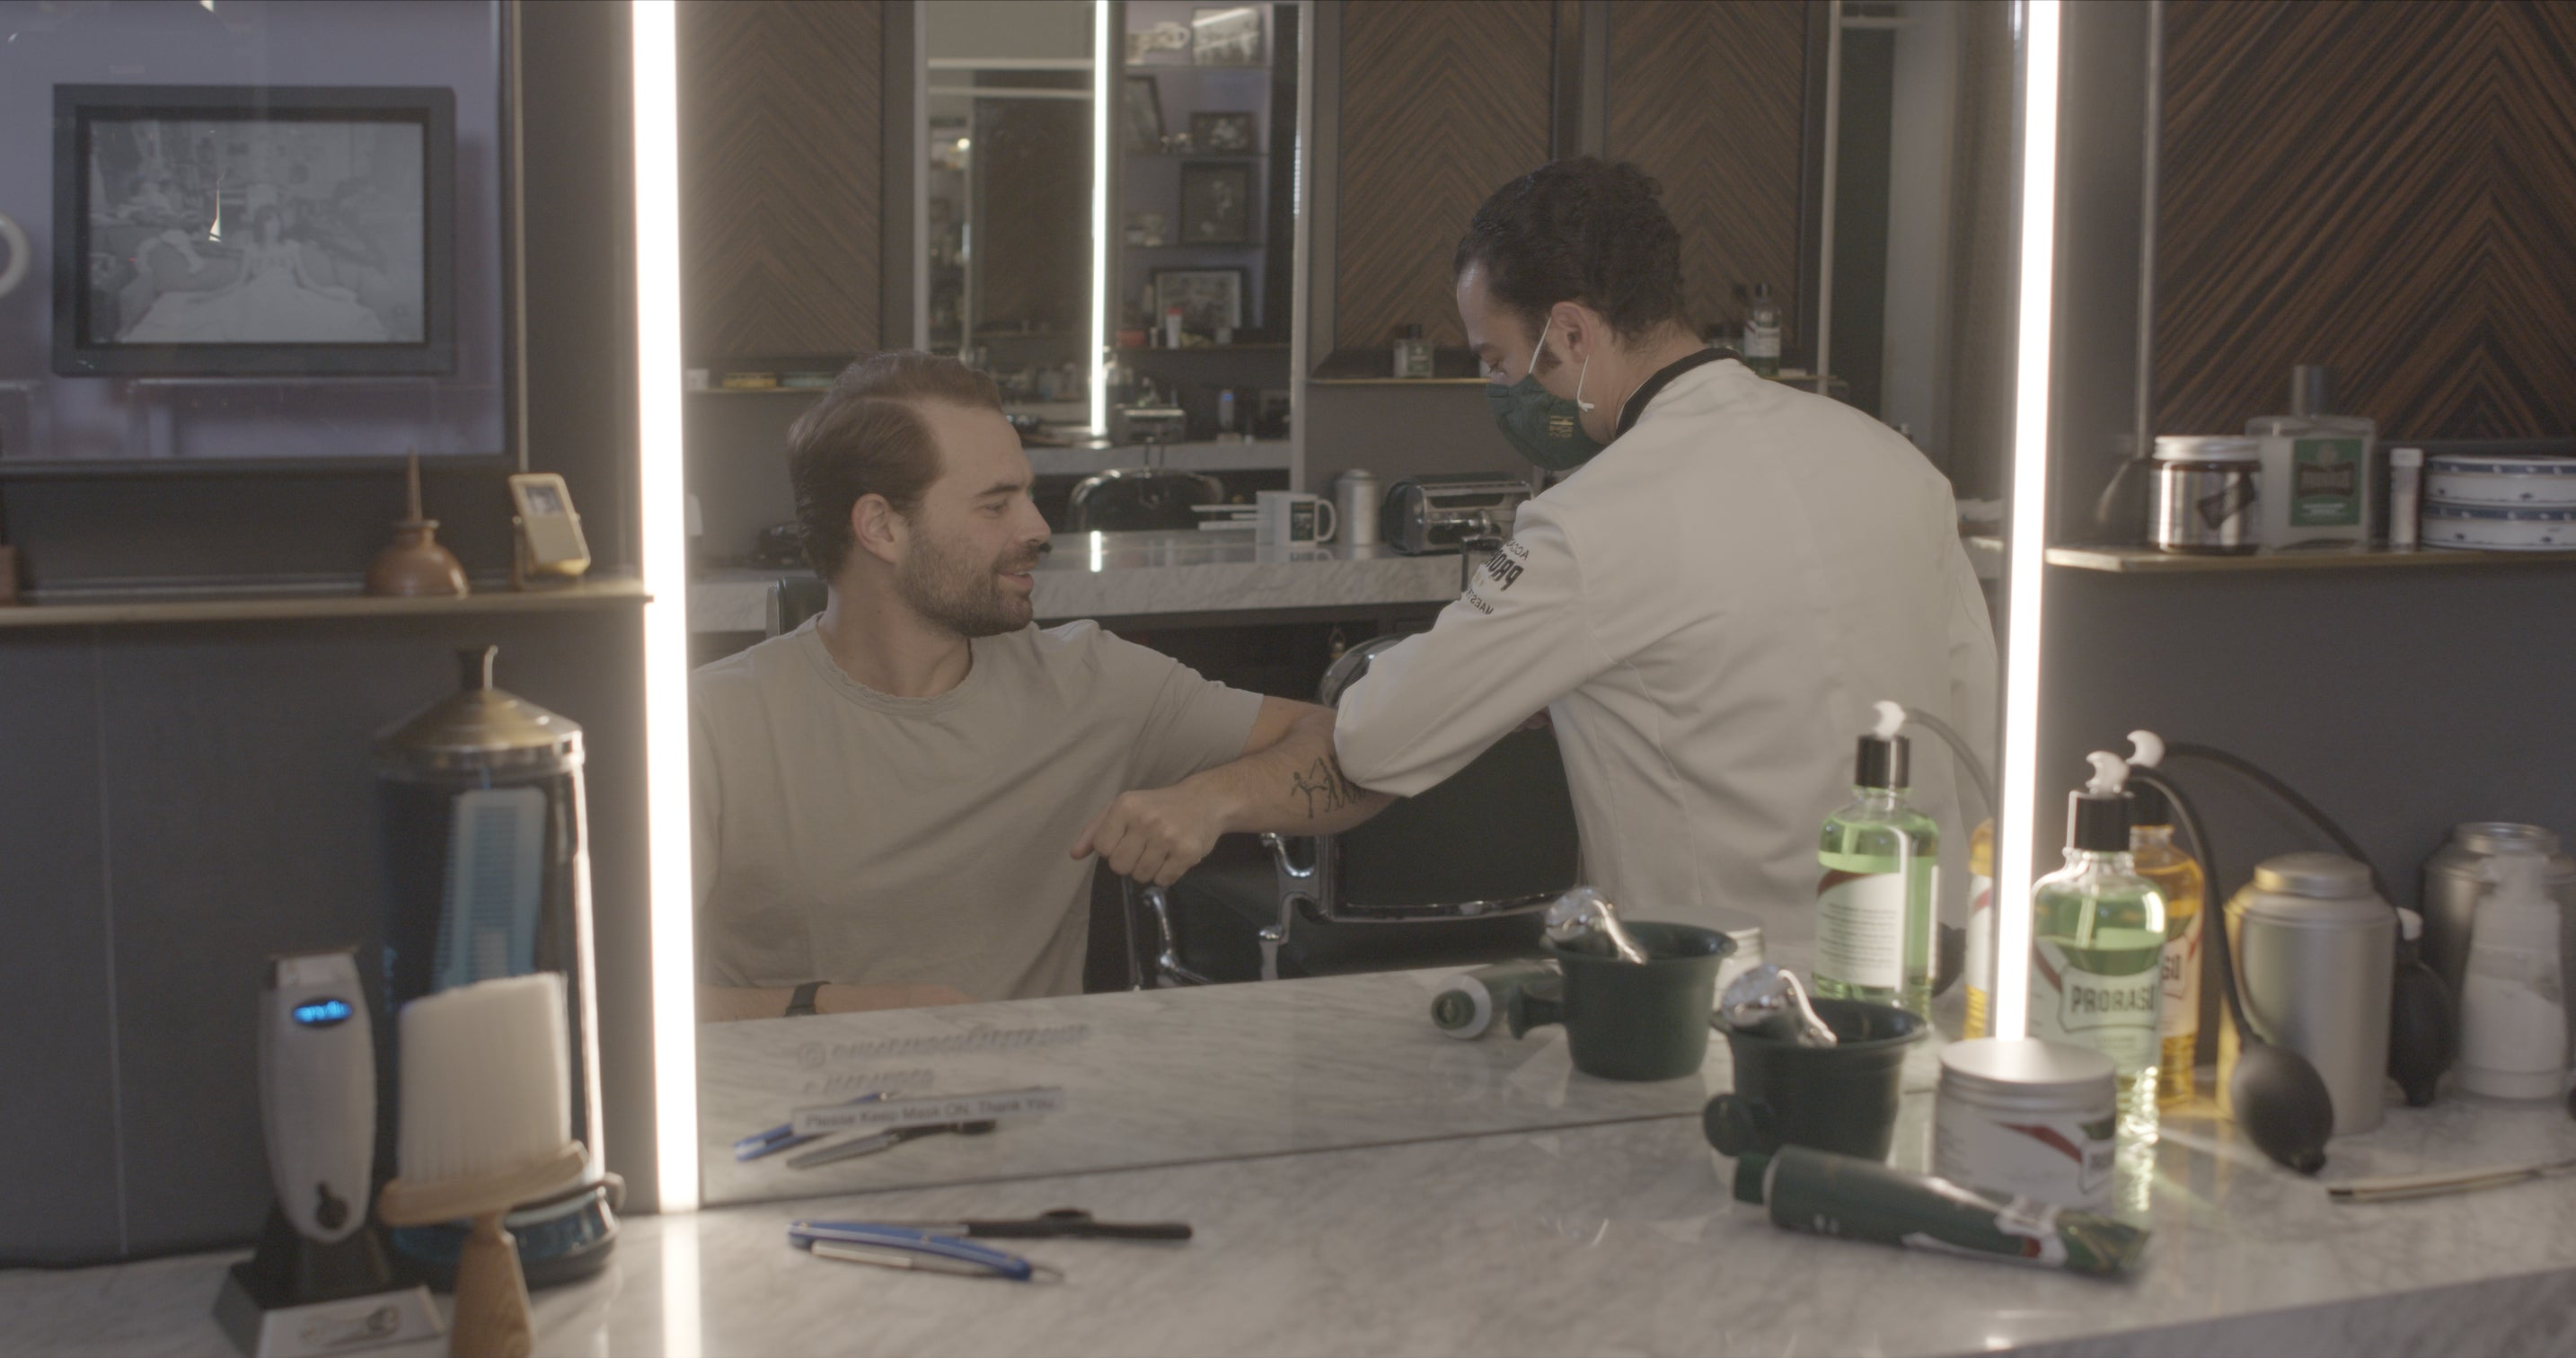 Mike and Alec greeting one another at Haar & co Barbershop